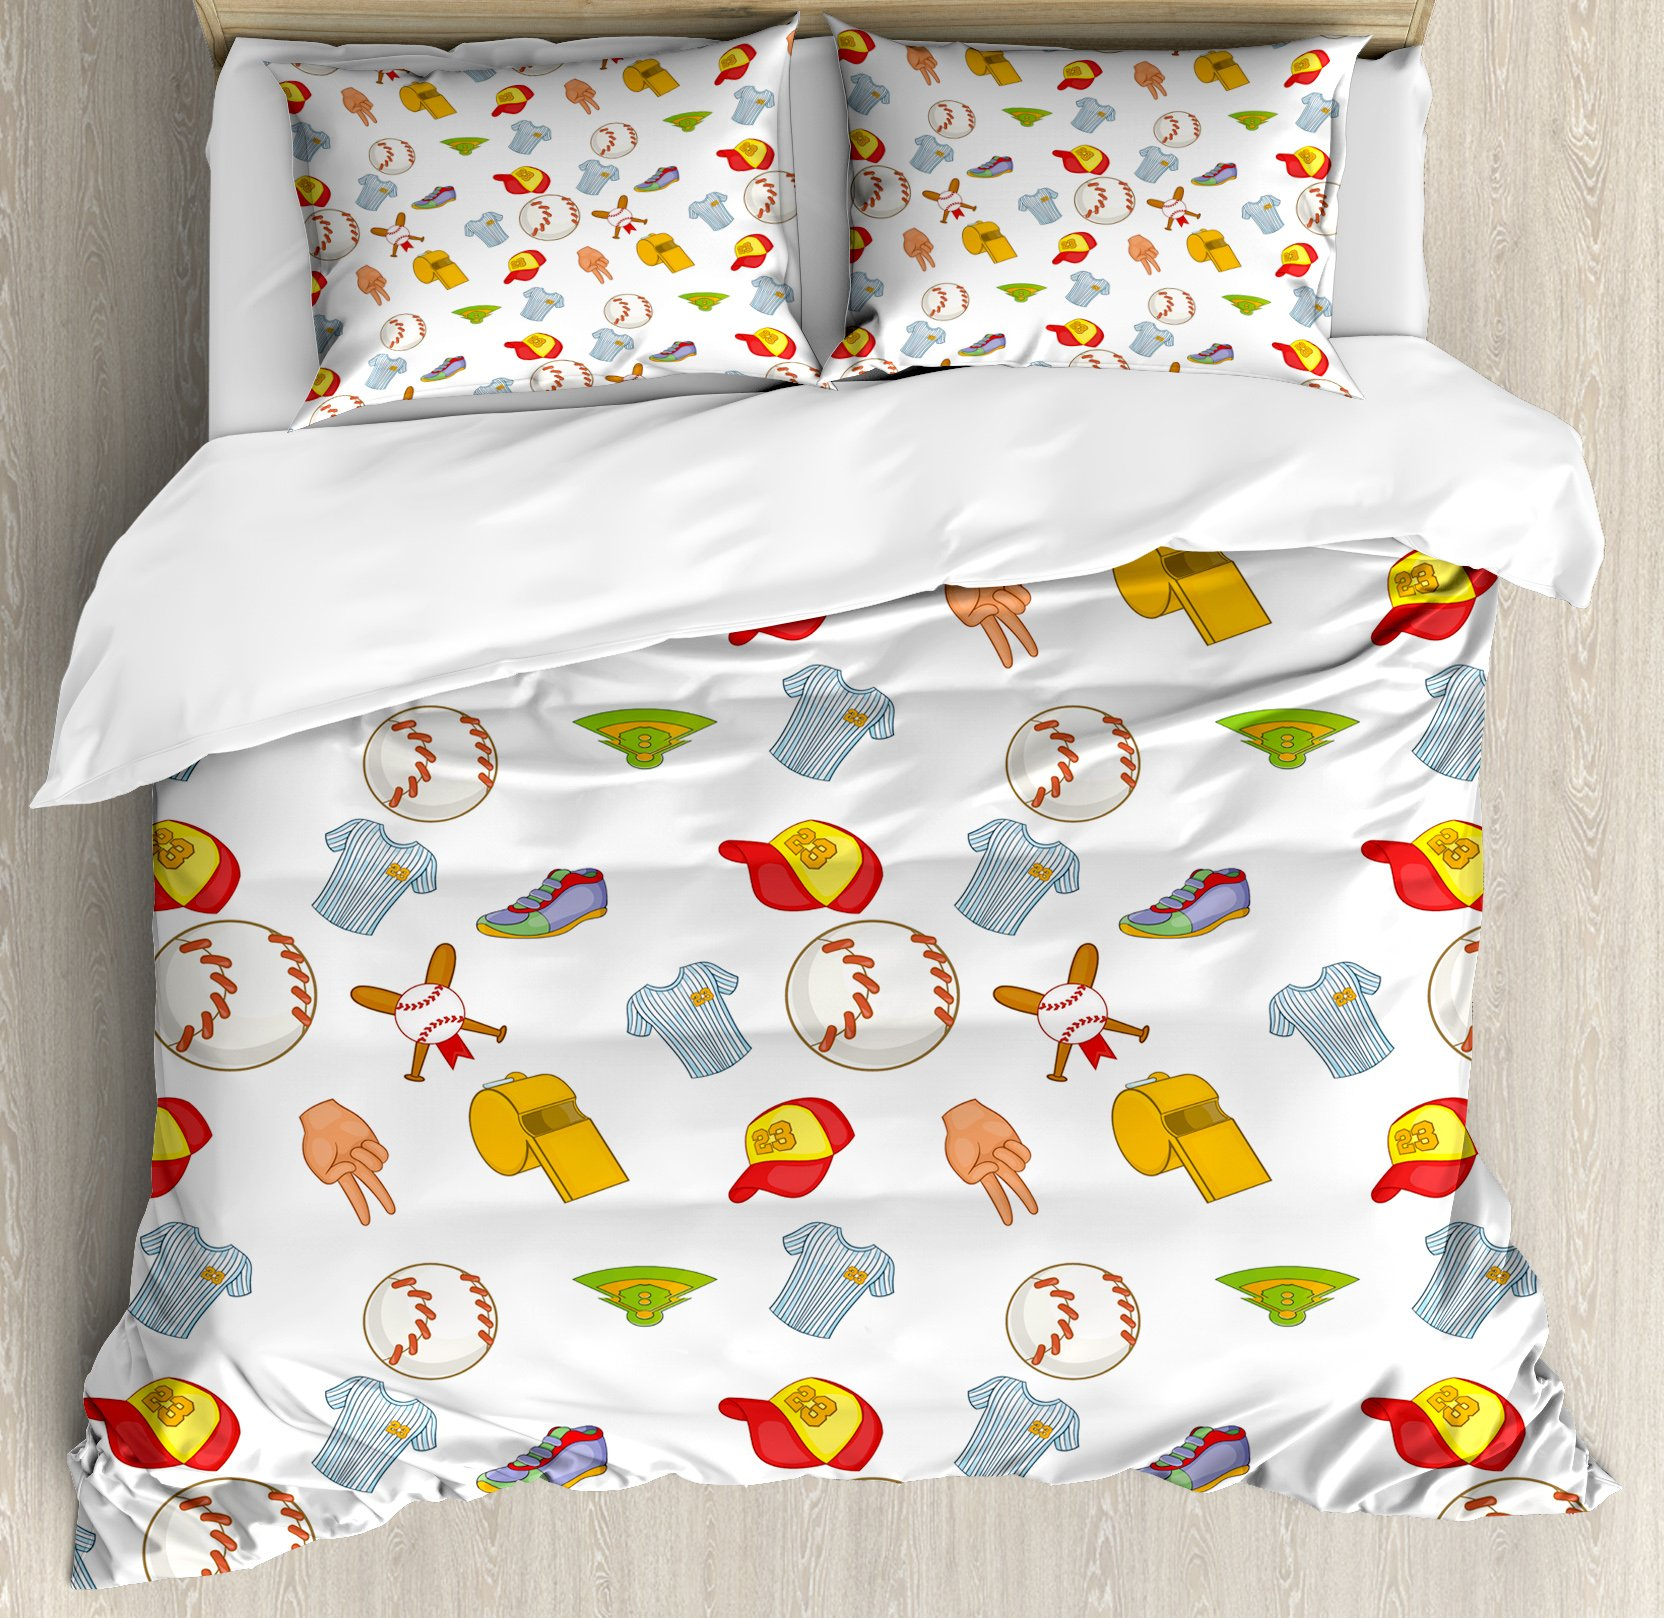 Baseball Duvet Cover Set Queen Size by Lunarable, Colorful Cartoon of Softball Sport Icons Professional Game Play League Tournament, Decorative 3 Piece Bedding Set with 2 Pillow Shams, Multicolor